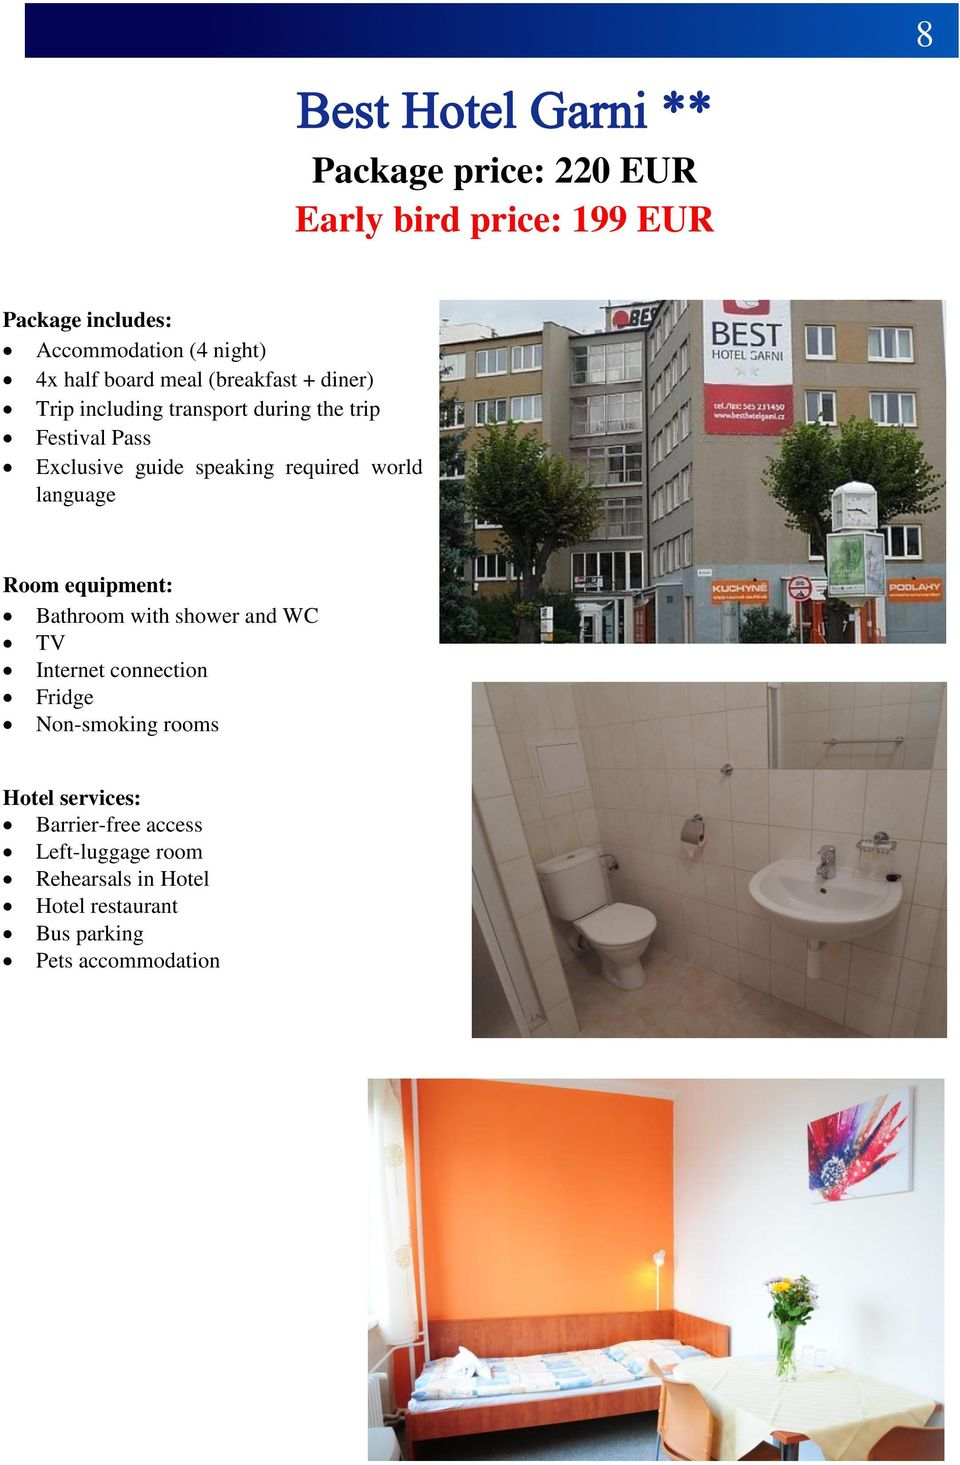 required world language Bathroom with shower and WC TV Internet connection Fridge Non-smoking rooms